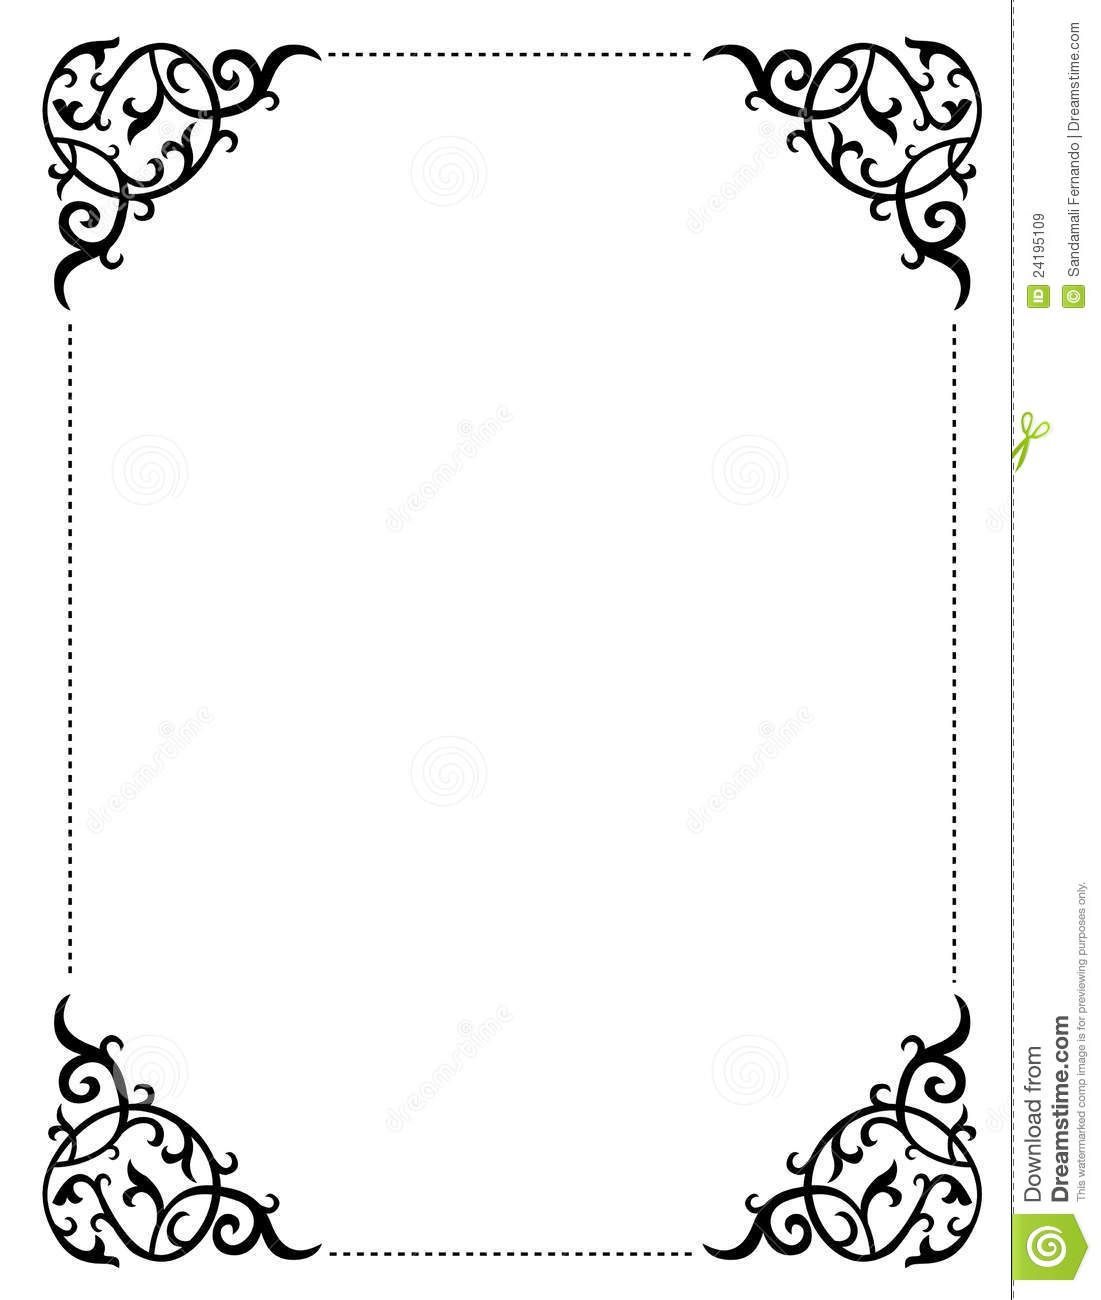 Free printable wedding clip art borders and backgrounds for Wedding invitation page borders free download